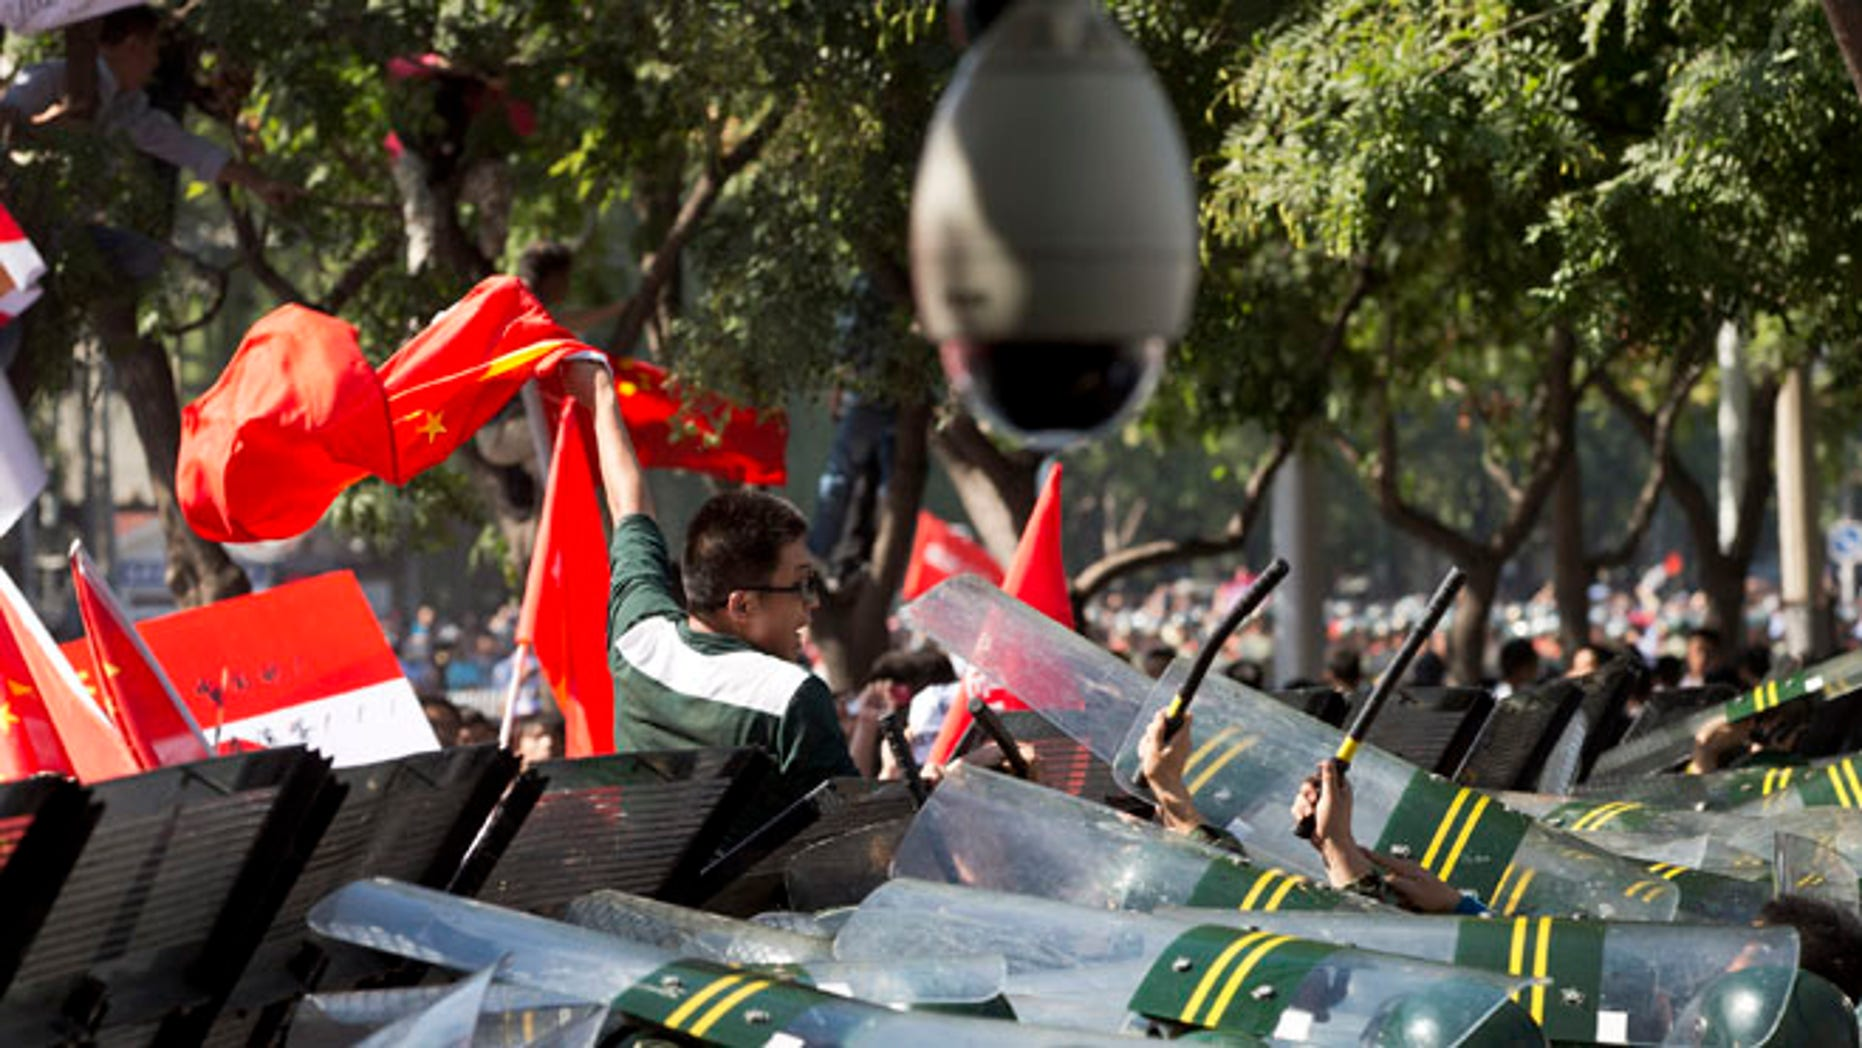 Sept. 15, 2012: A Chinese demonstrator climbs over the fence and chants slogans during an anti-Japanese protests outside the Japanese Embassy in Beijing.